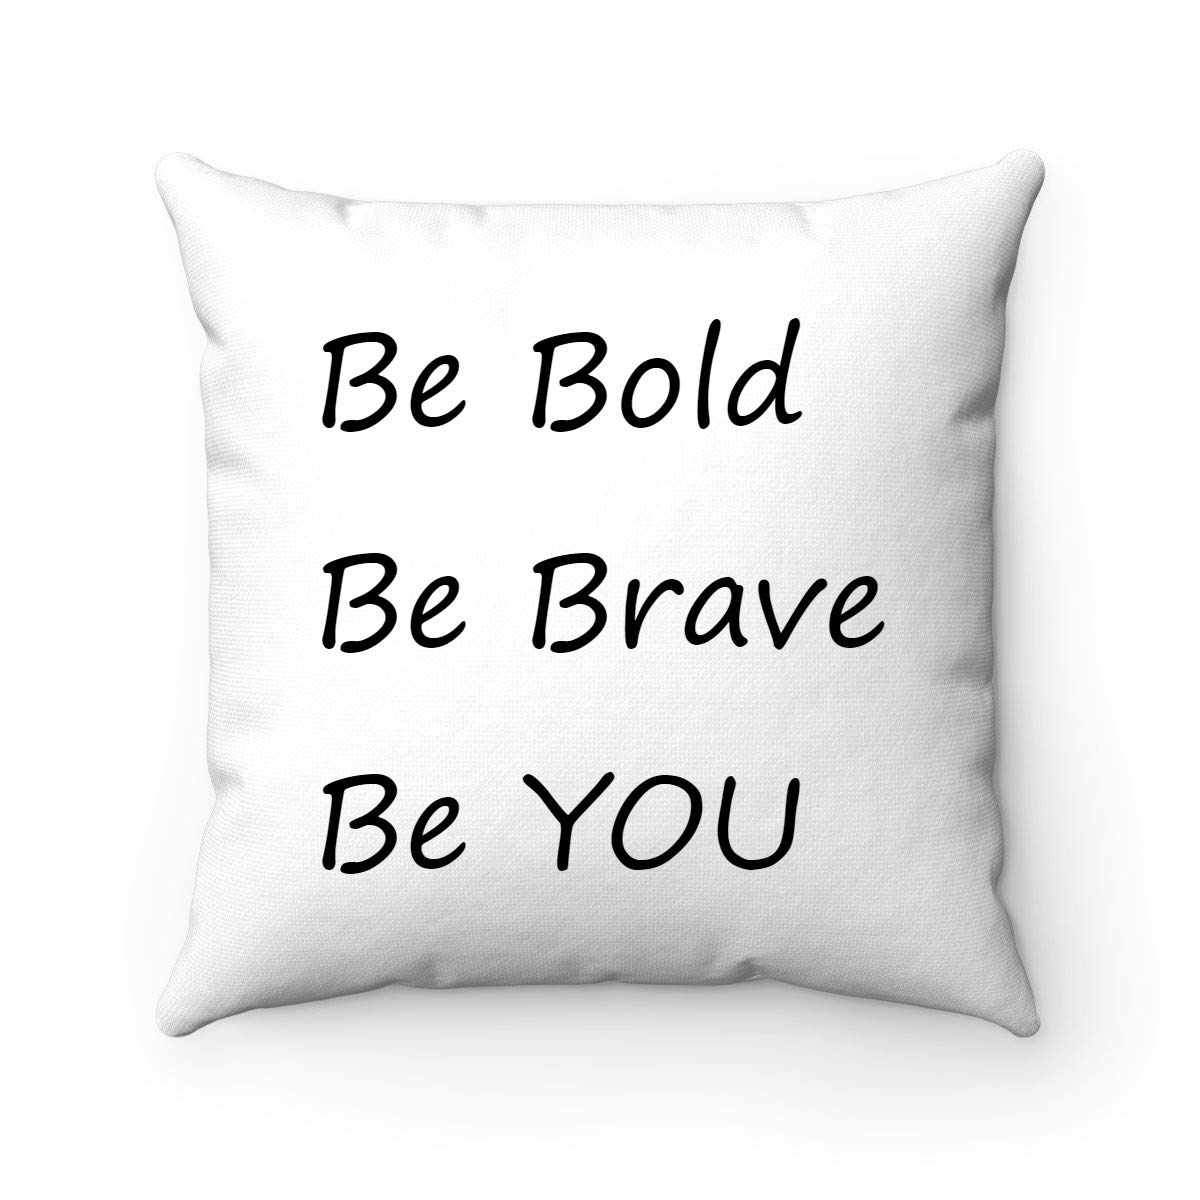 Buy Fabricmcc Throw Pillow Cover Be Bold Be Brave Be You Quote Words Square Decorative Canvas Cushion Cover Throw Pillowcase For Couch Online At Low Prices In India Amazon In